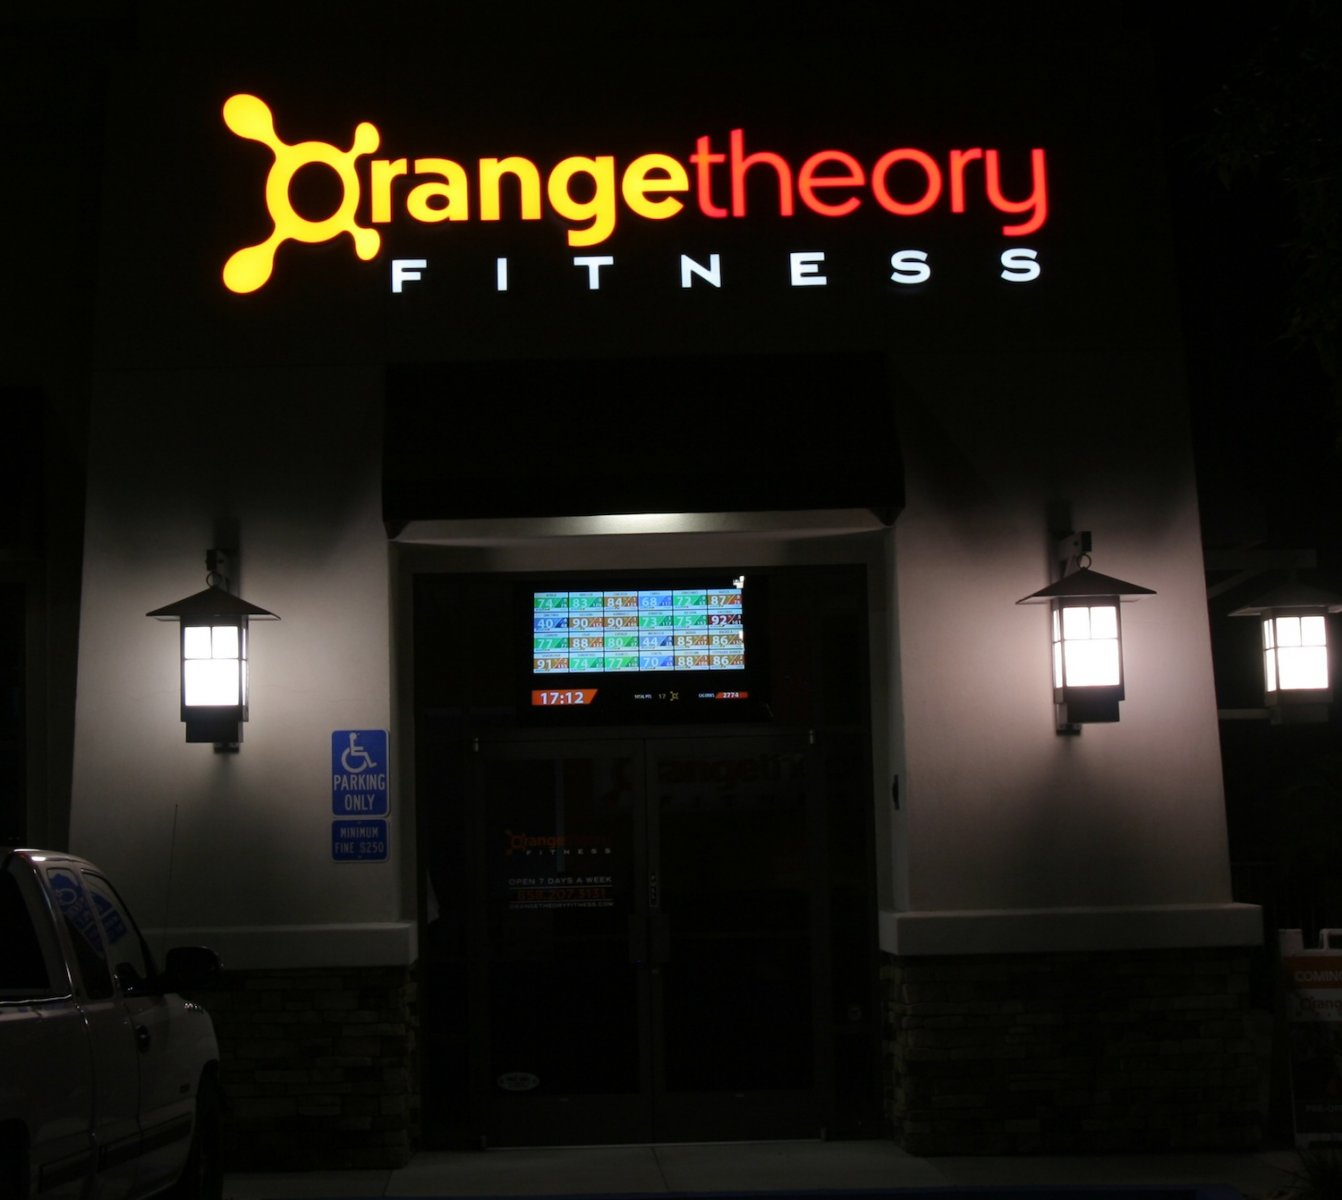 Orange Theory Fitness - Carmel Valley